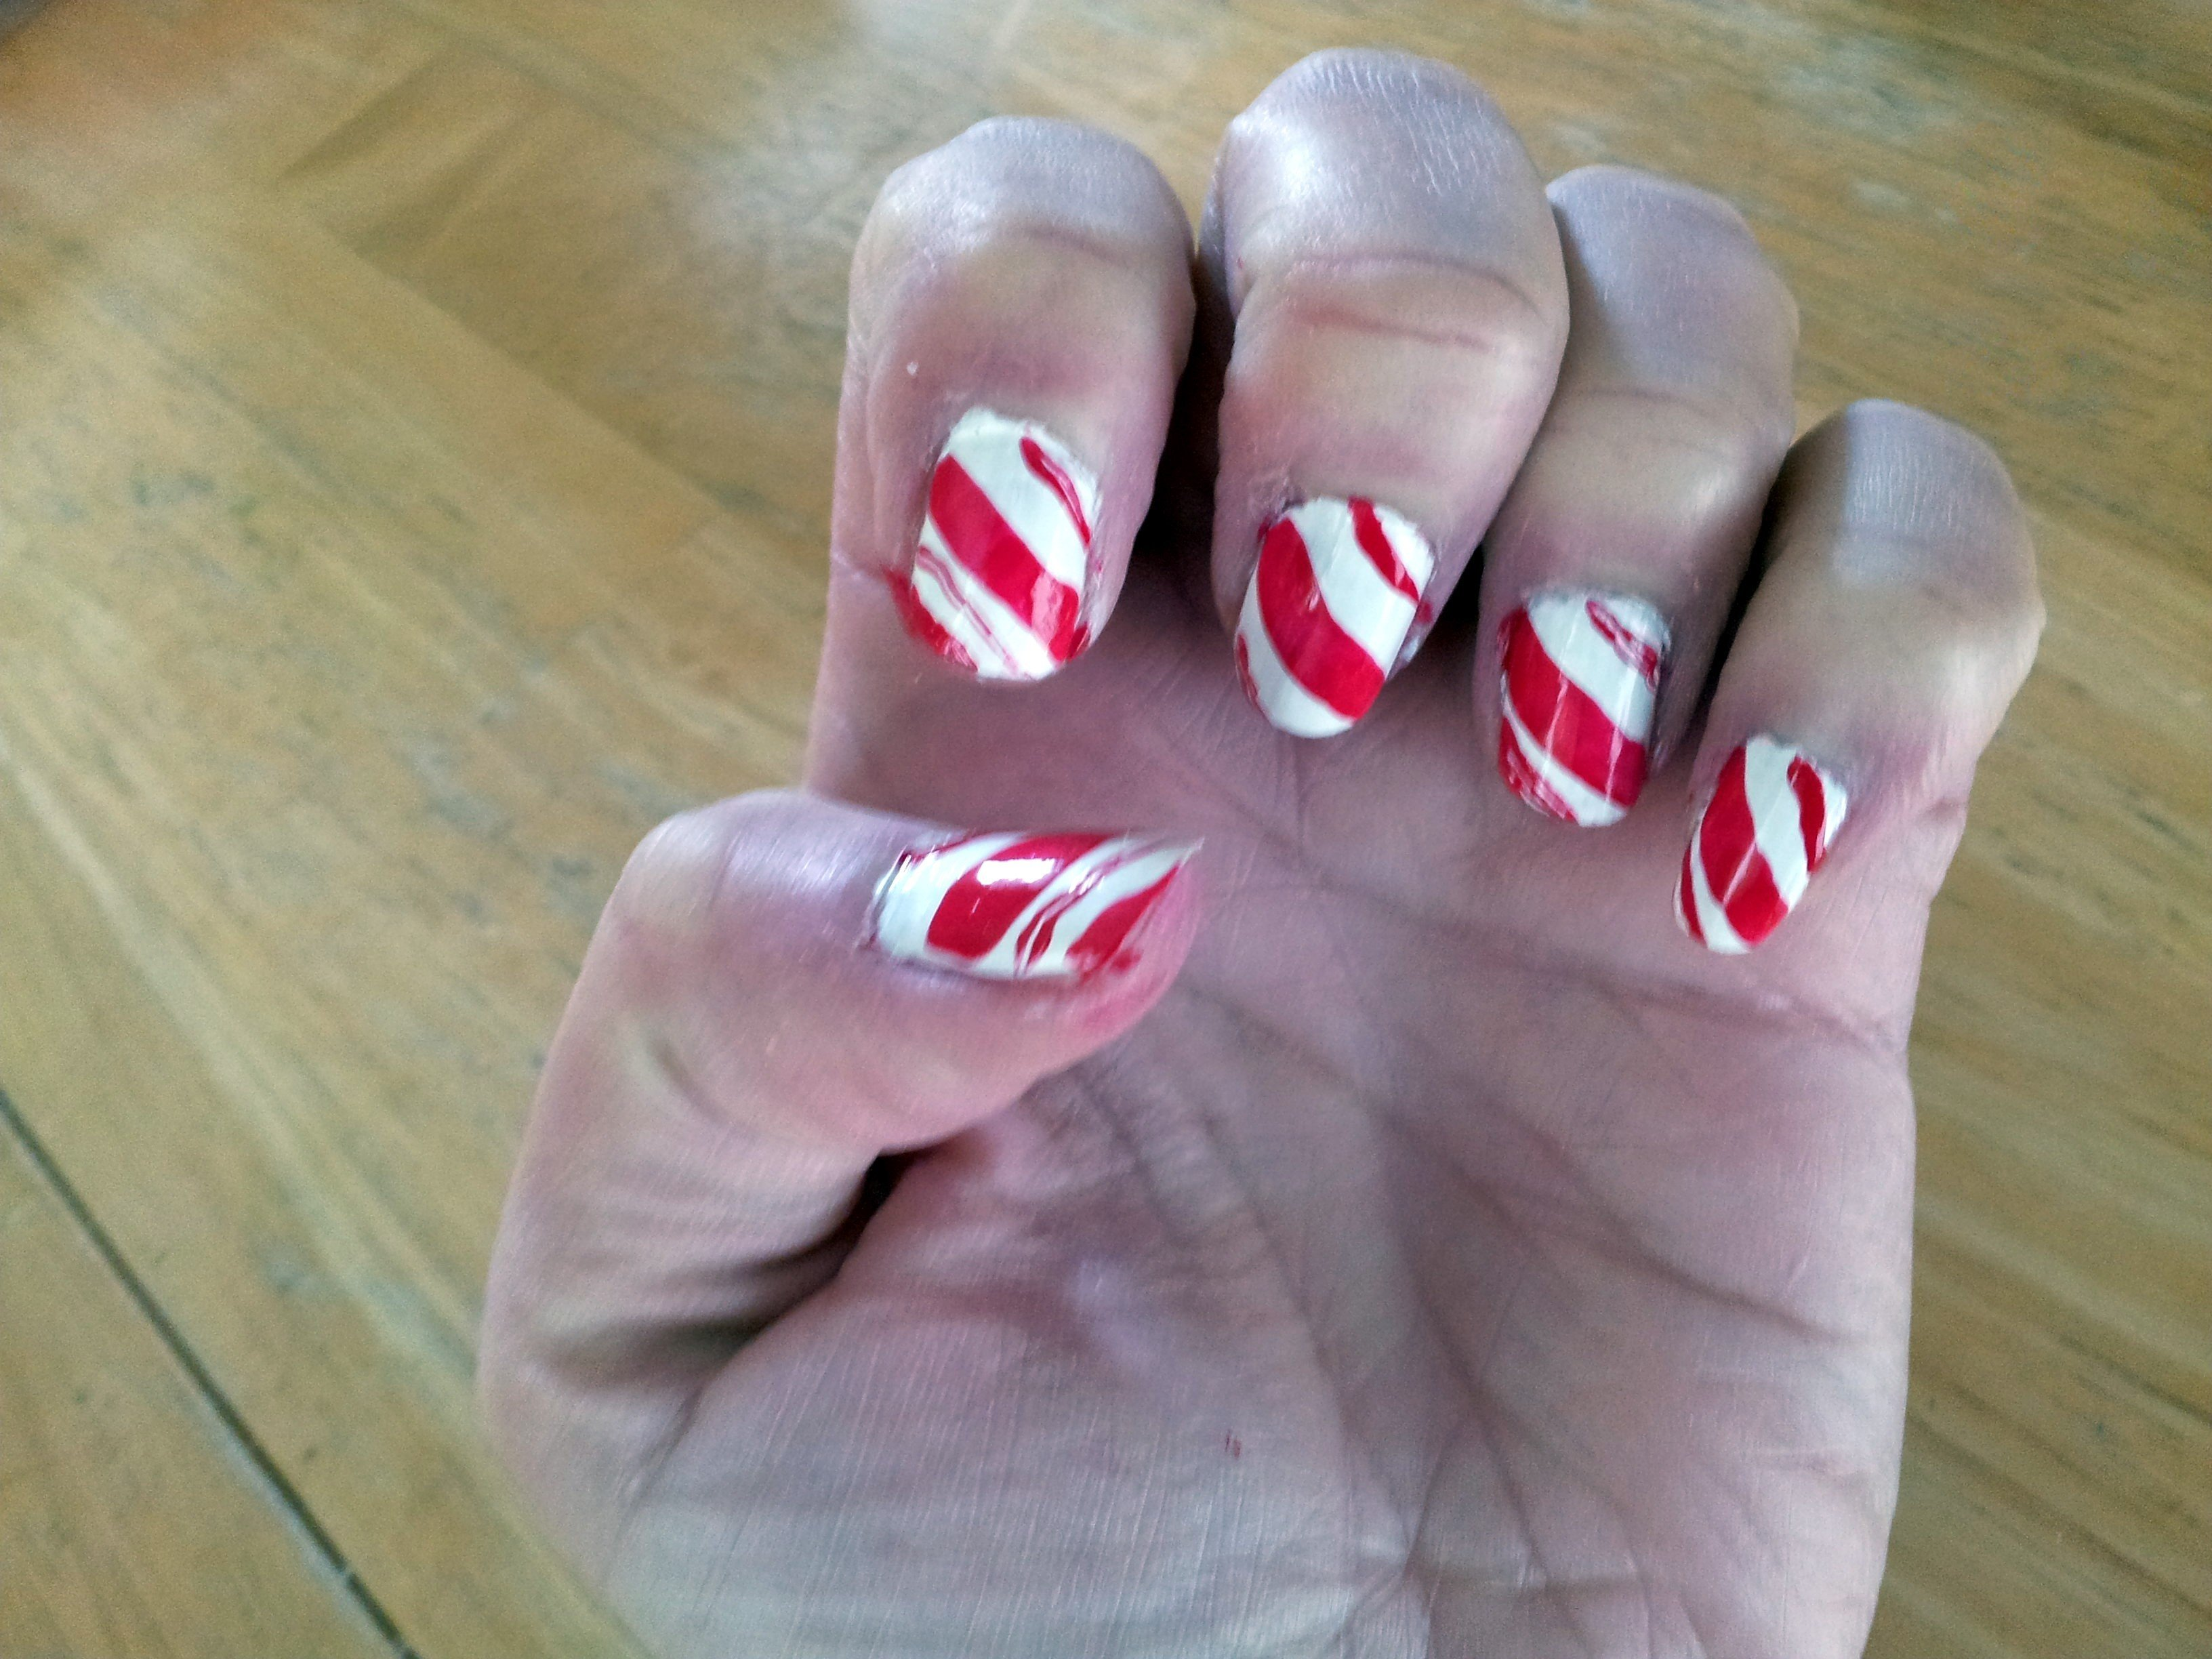 Candy cane nails completed